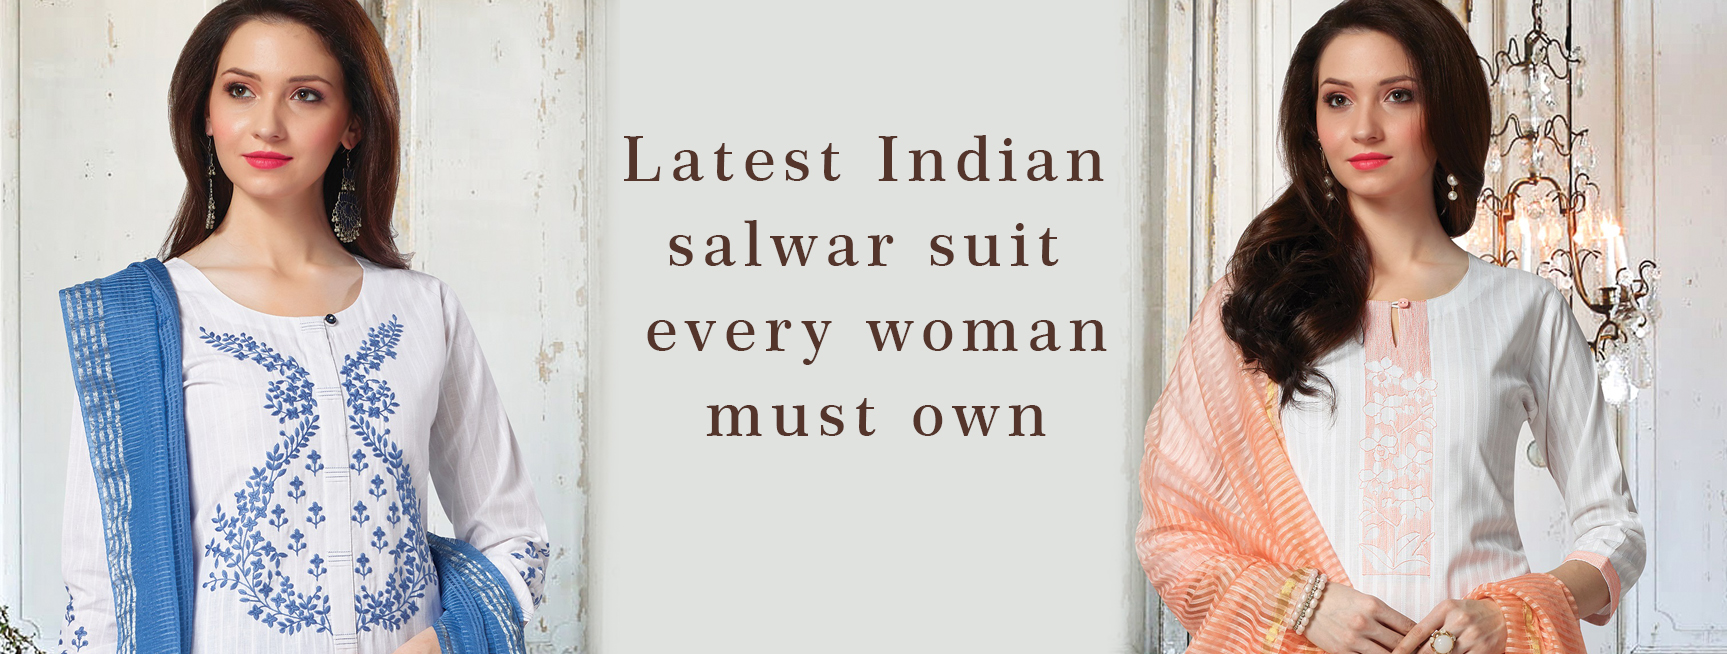 Latest Indian Salwar Suit every Woman must Own!